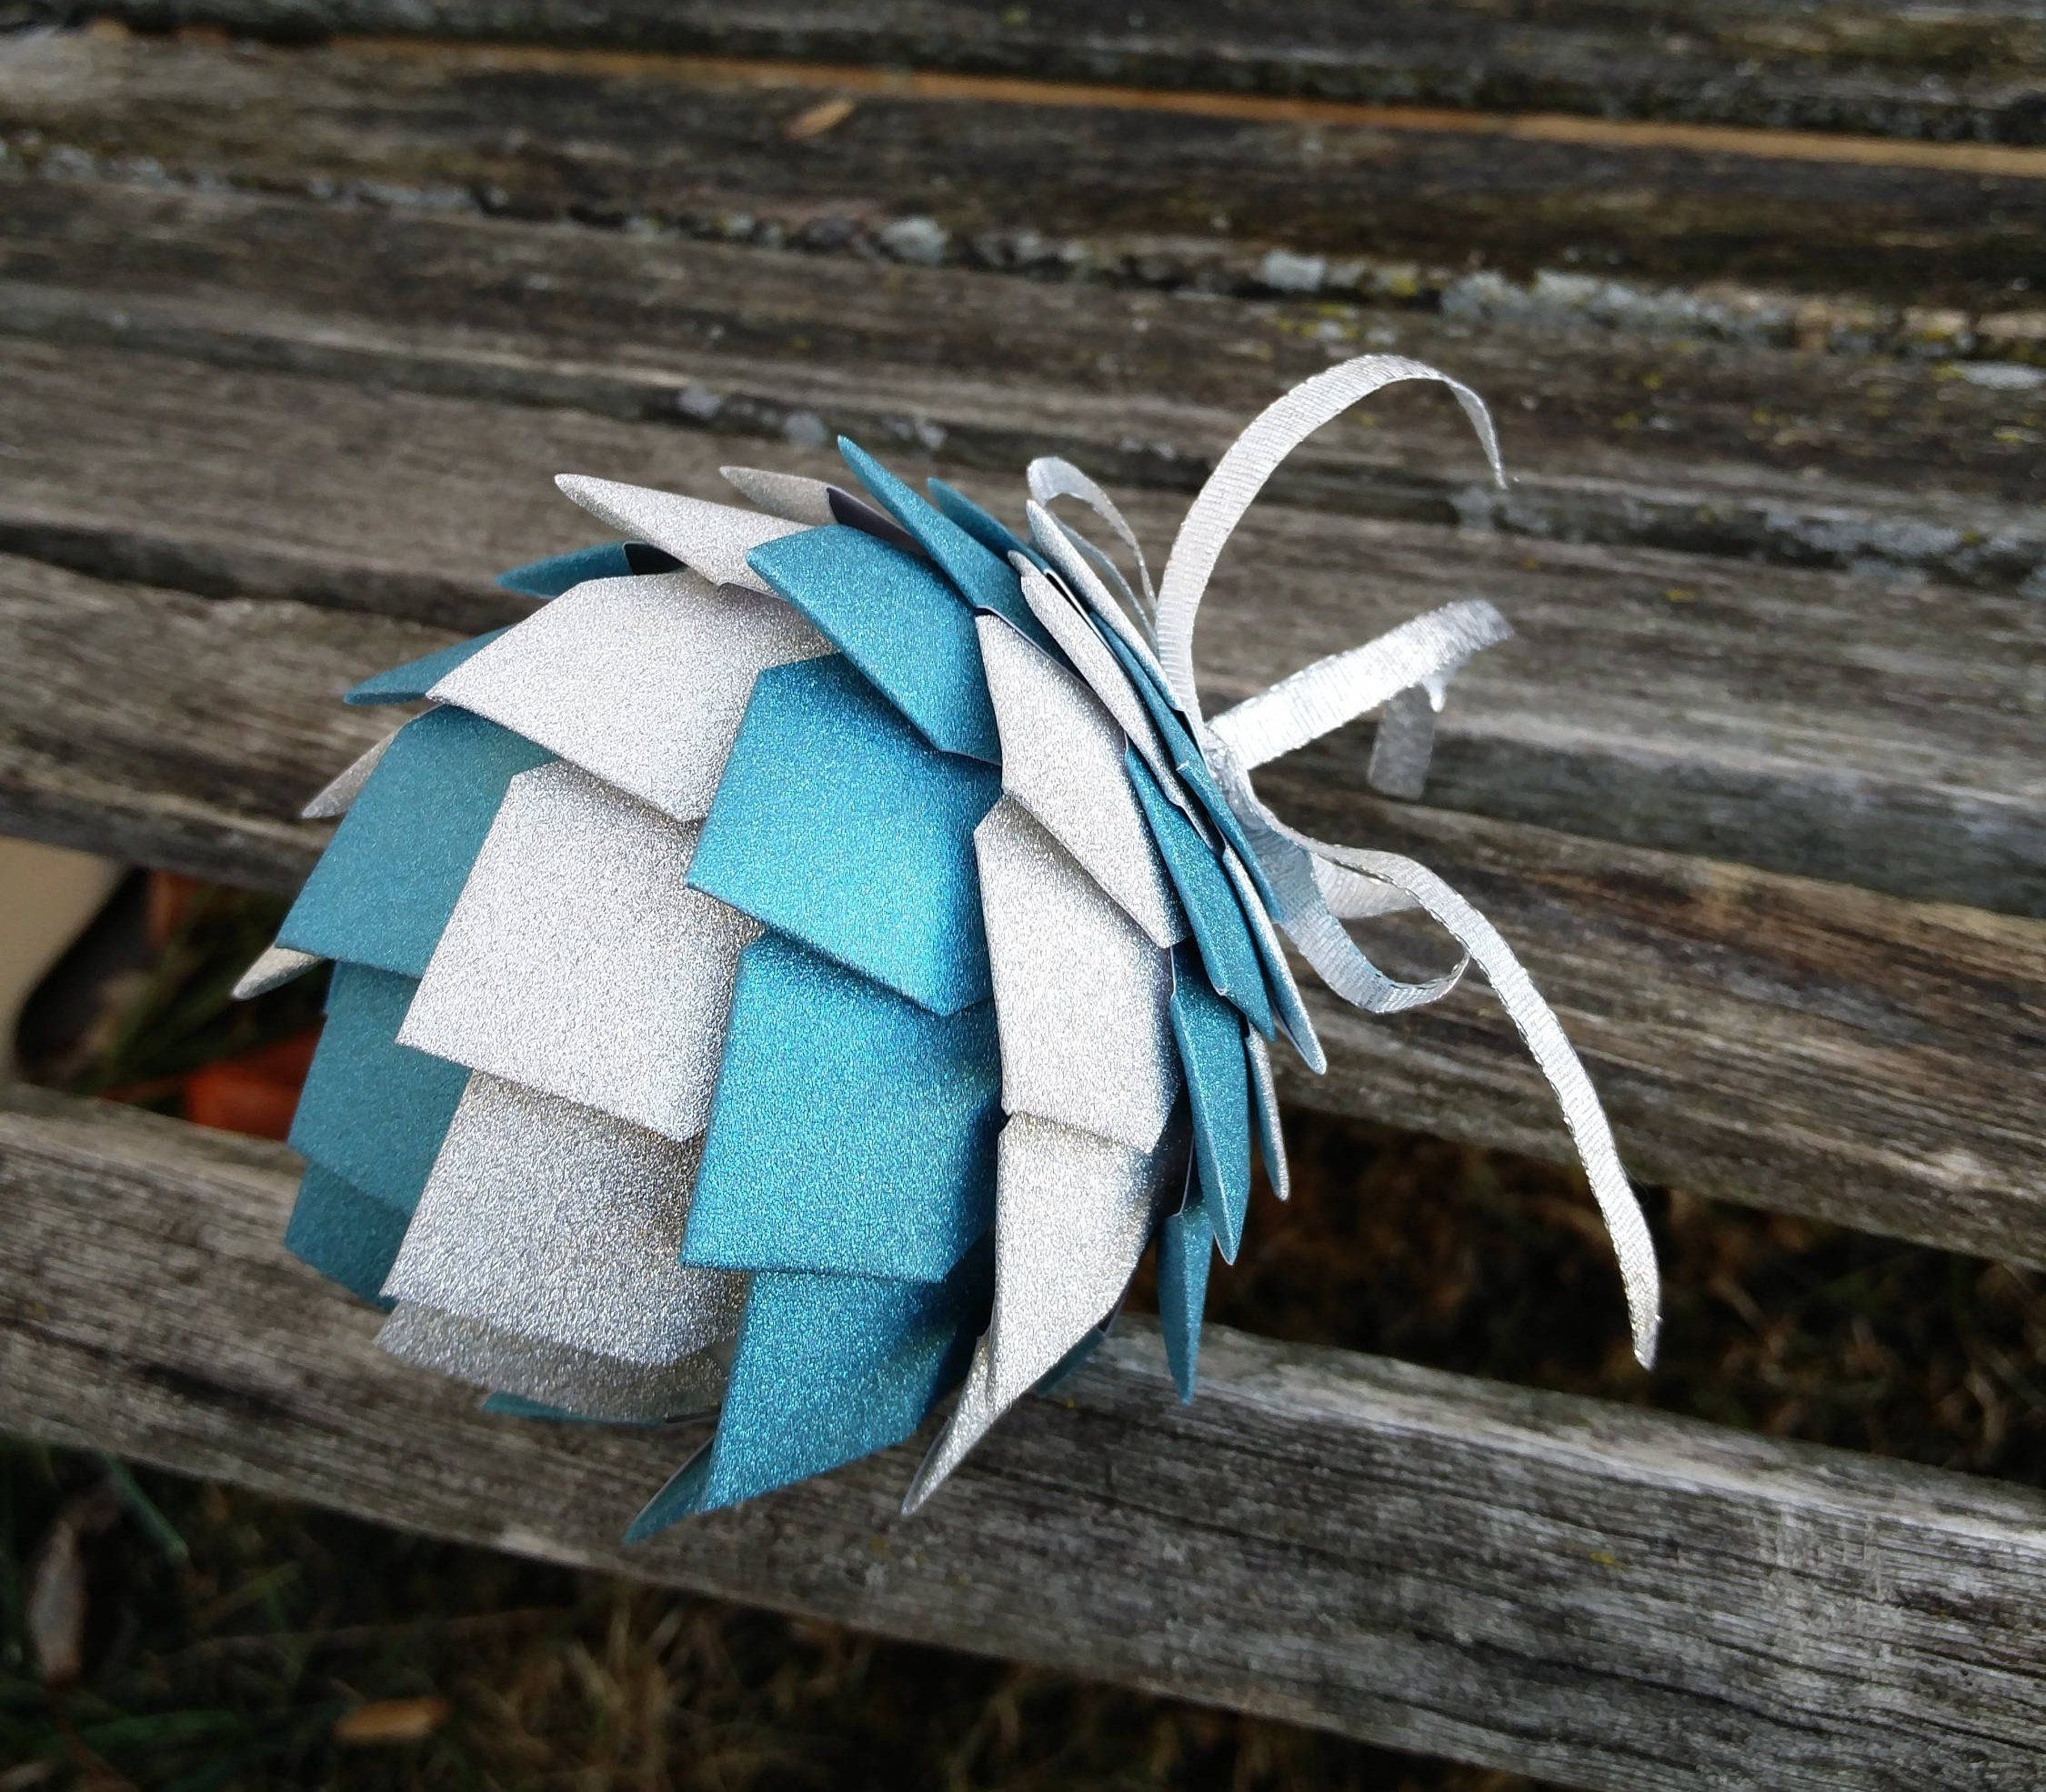 Decoration FLY FISHING Paper Pinecone Ornament Dad. Flies Gift Birthday Christmas Anniversary